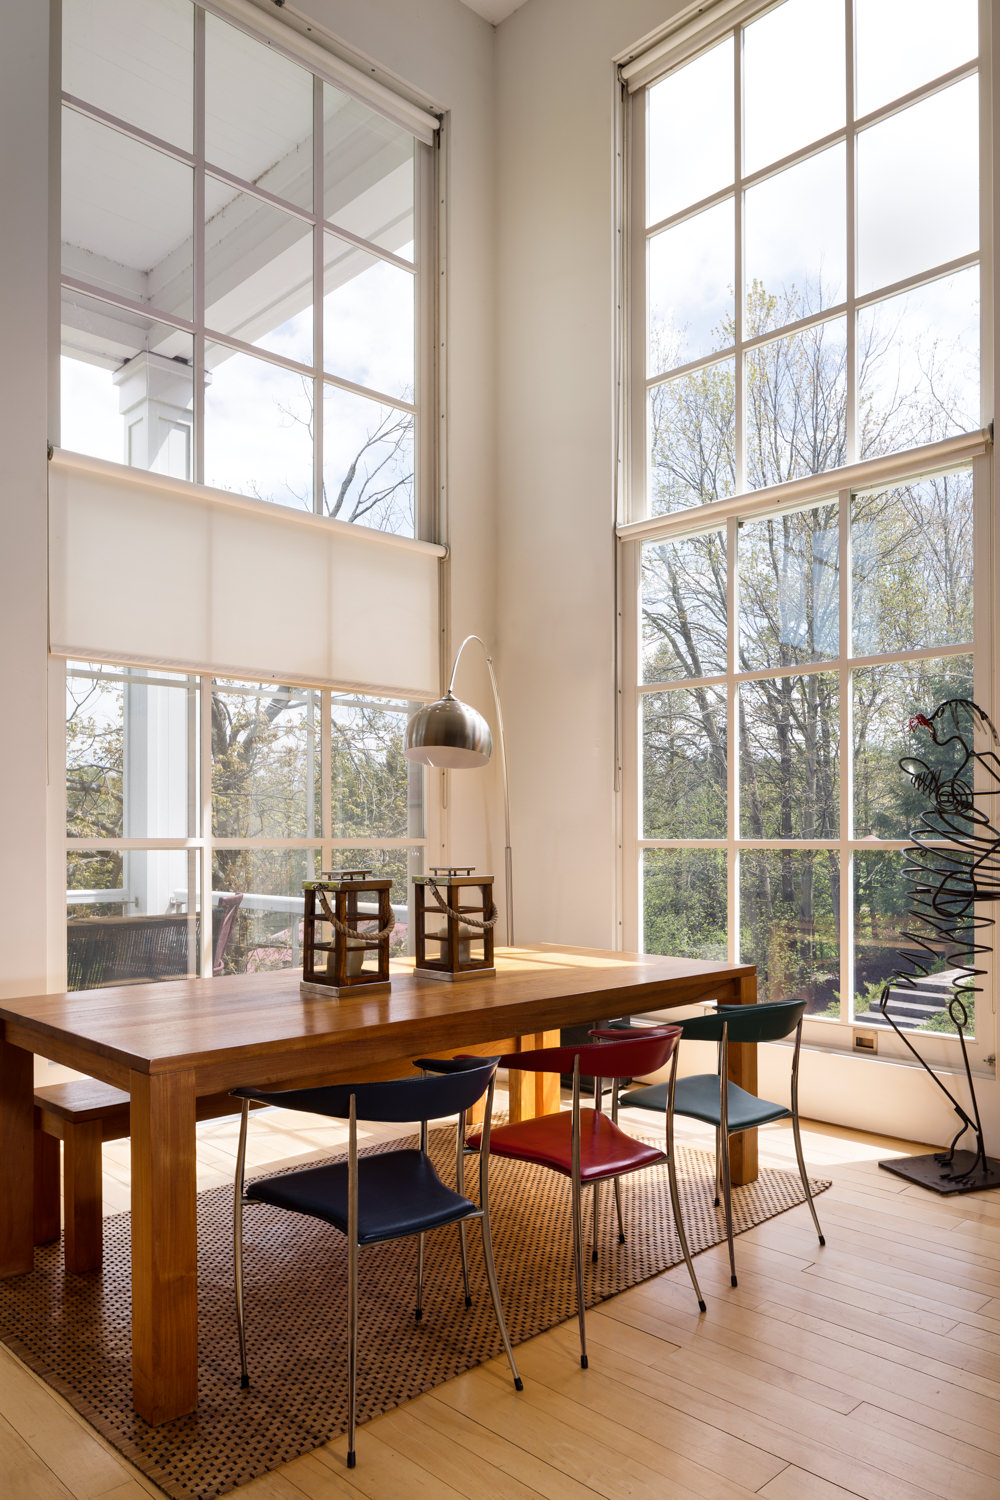 Vermont professional photographer Stina Booth captures the soaring floor to ceiling pane glass windows in a contemporary dining room